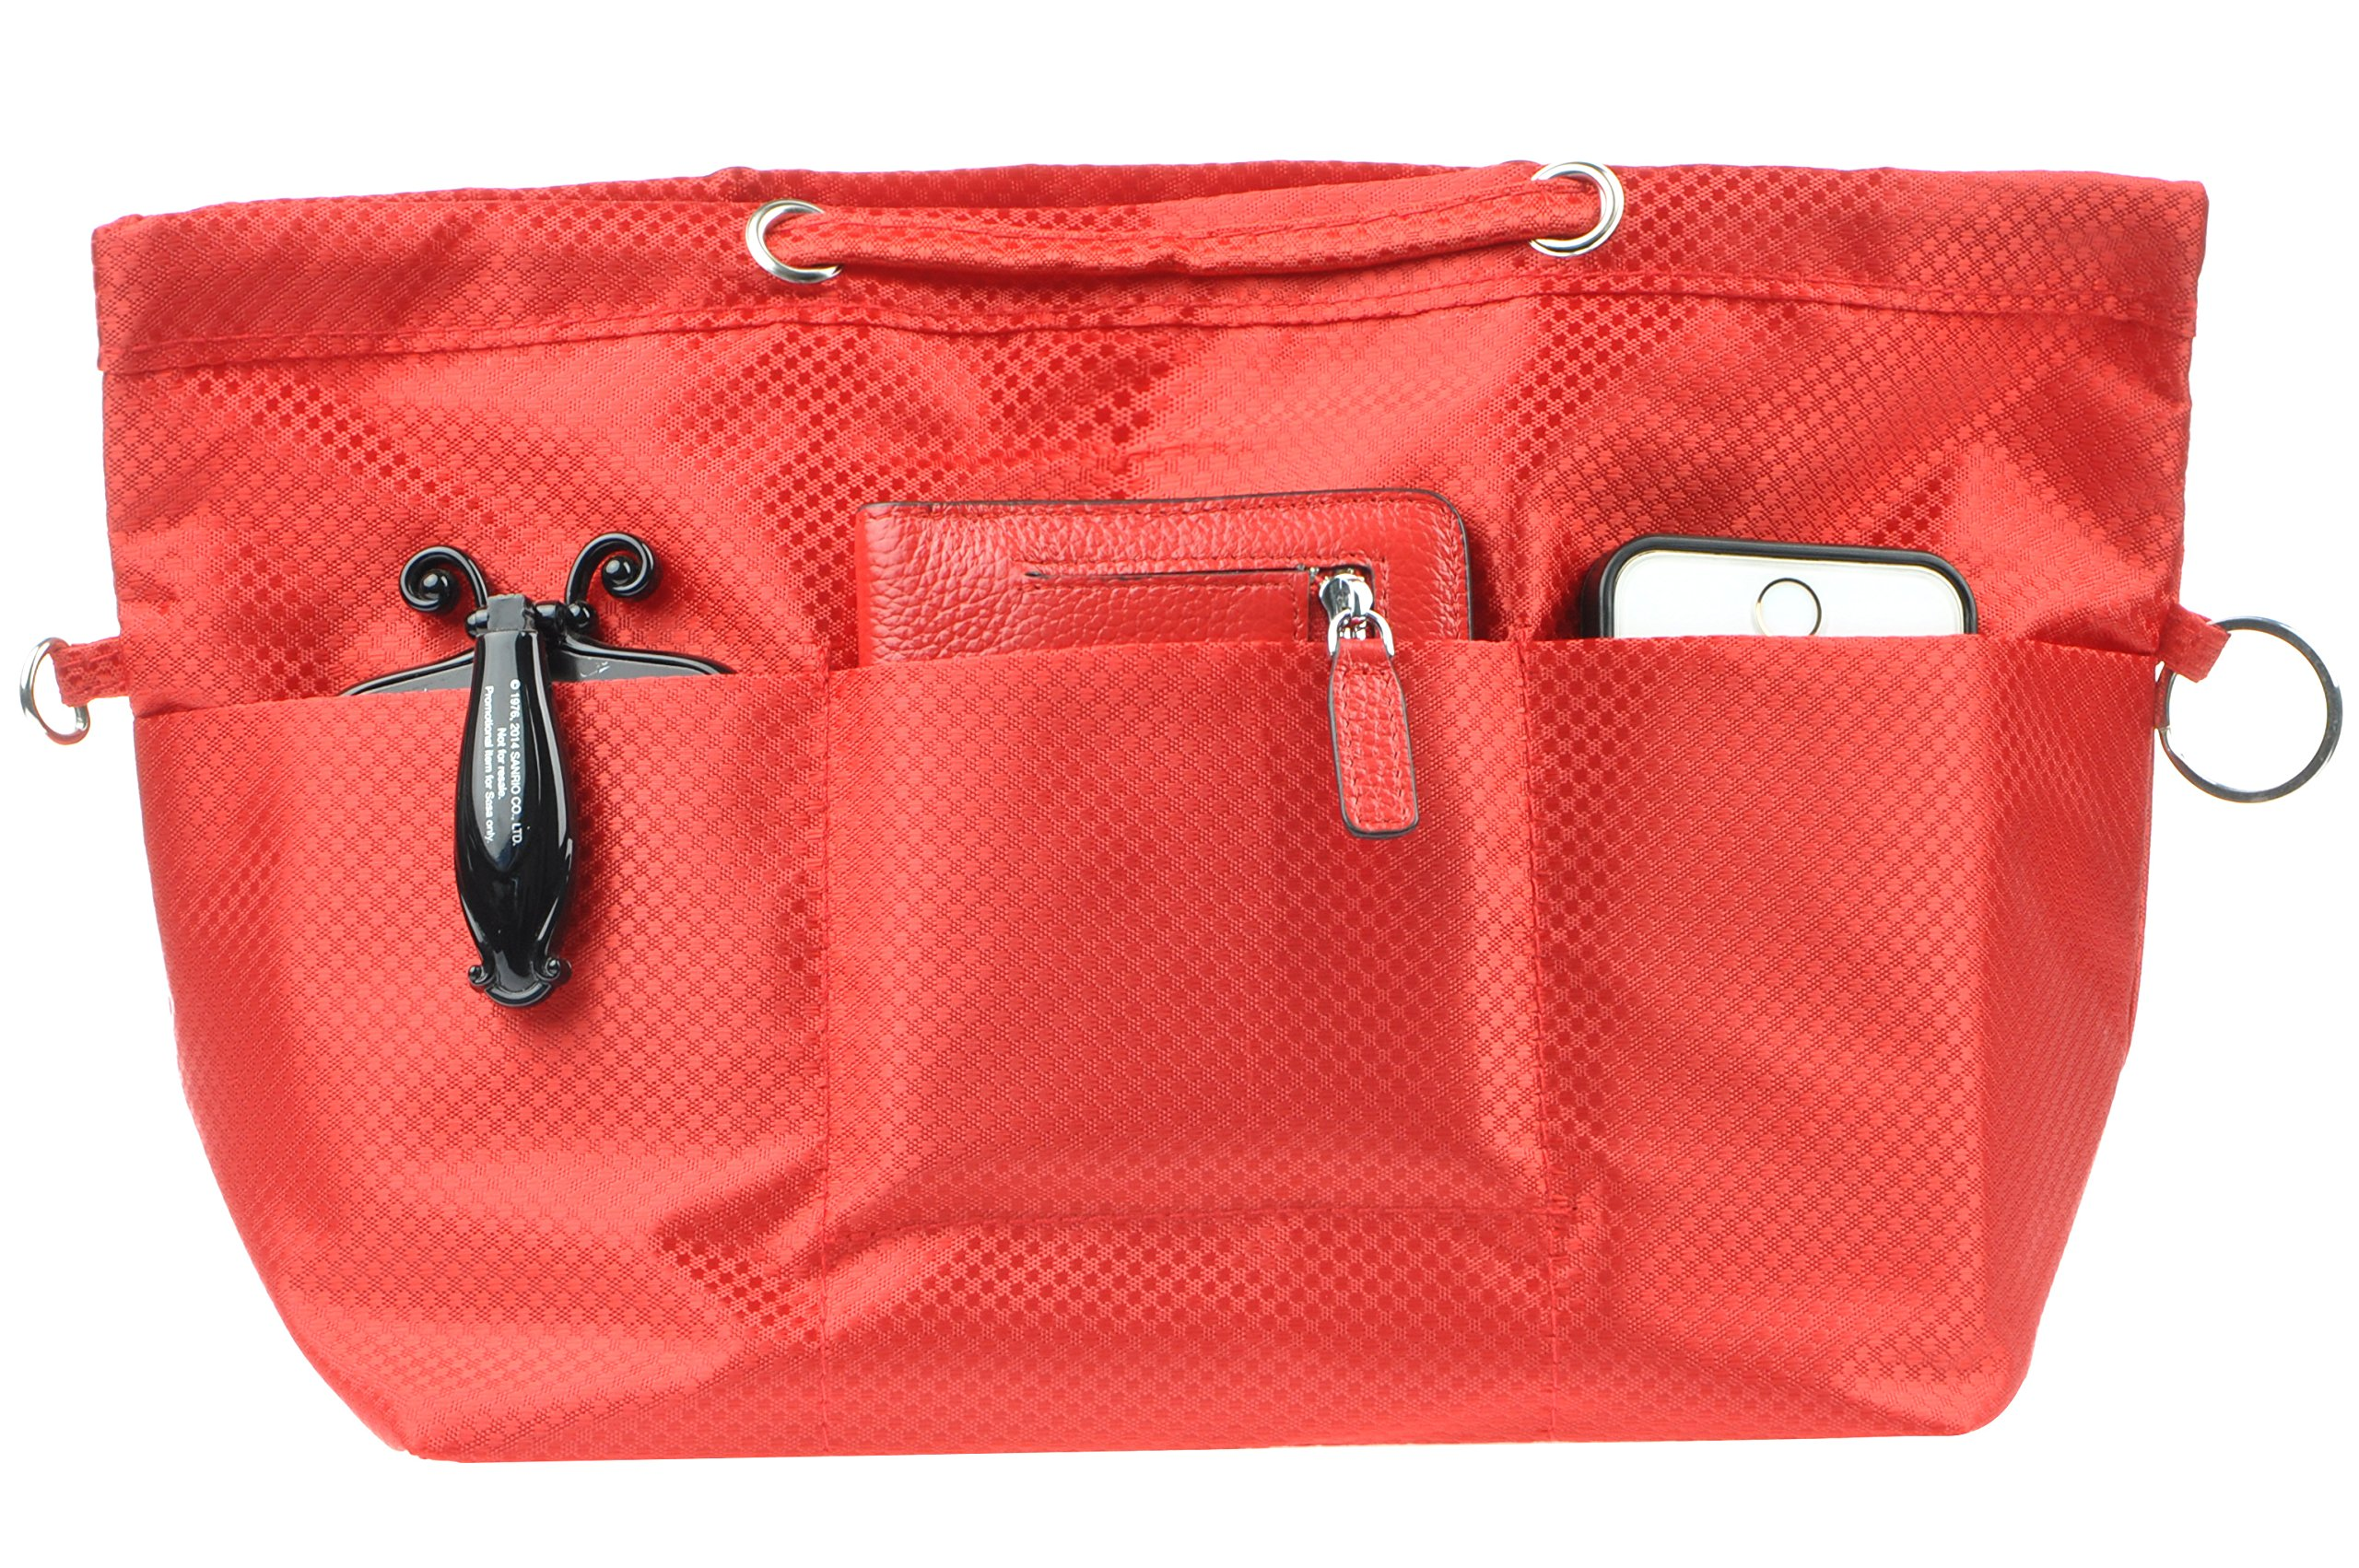 Vercord Oxford Handbag Purse Tote Pocketbook Insert Organizer With Handle 2 Sizes, Red L